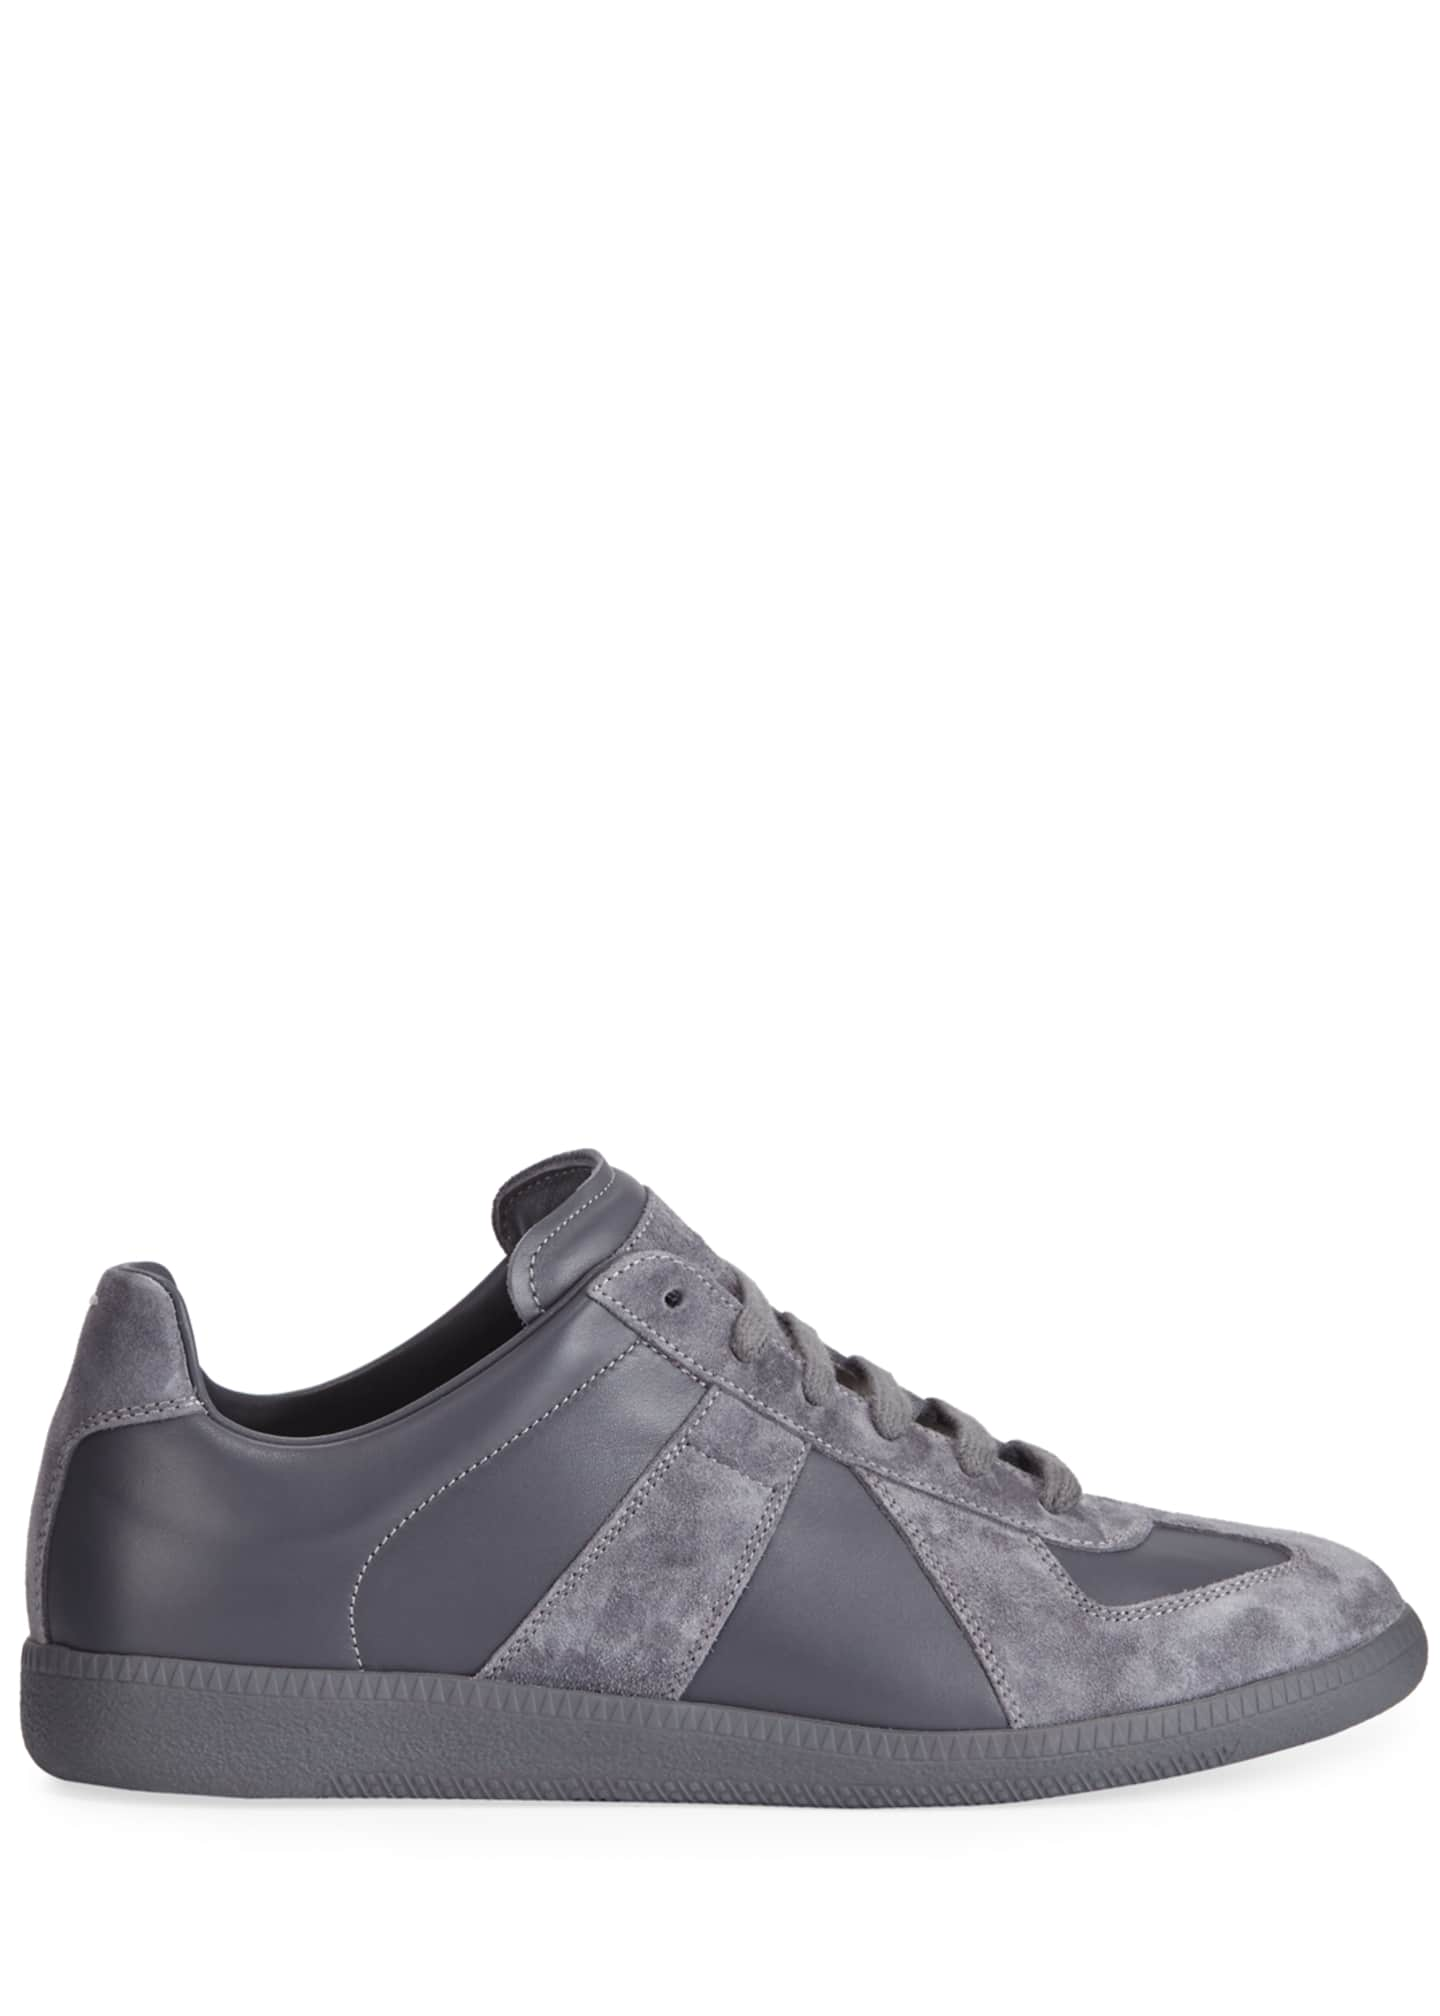 Image 3 of 3: Men's Replica Low-Top Leather Sneakers